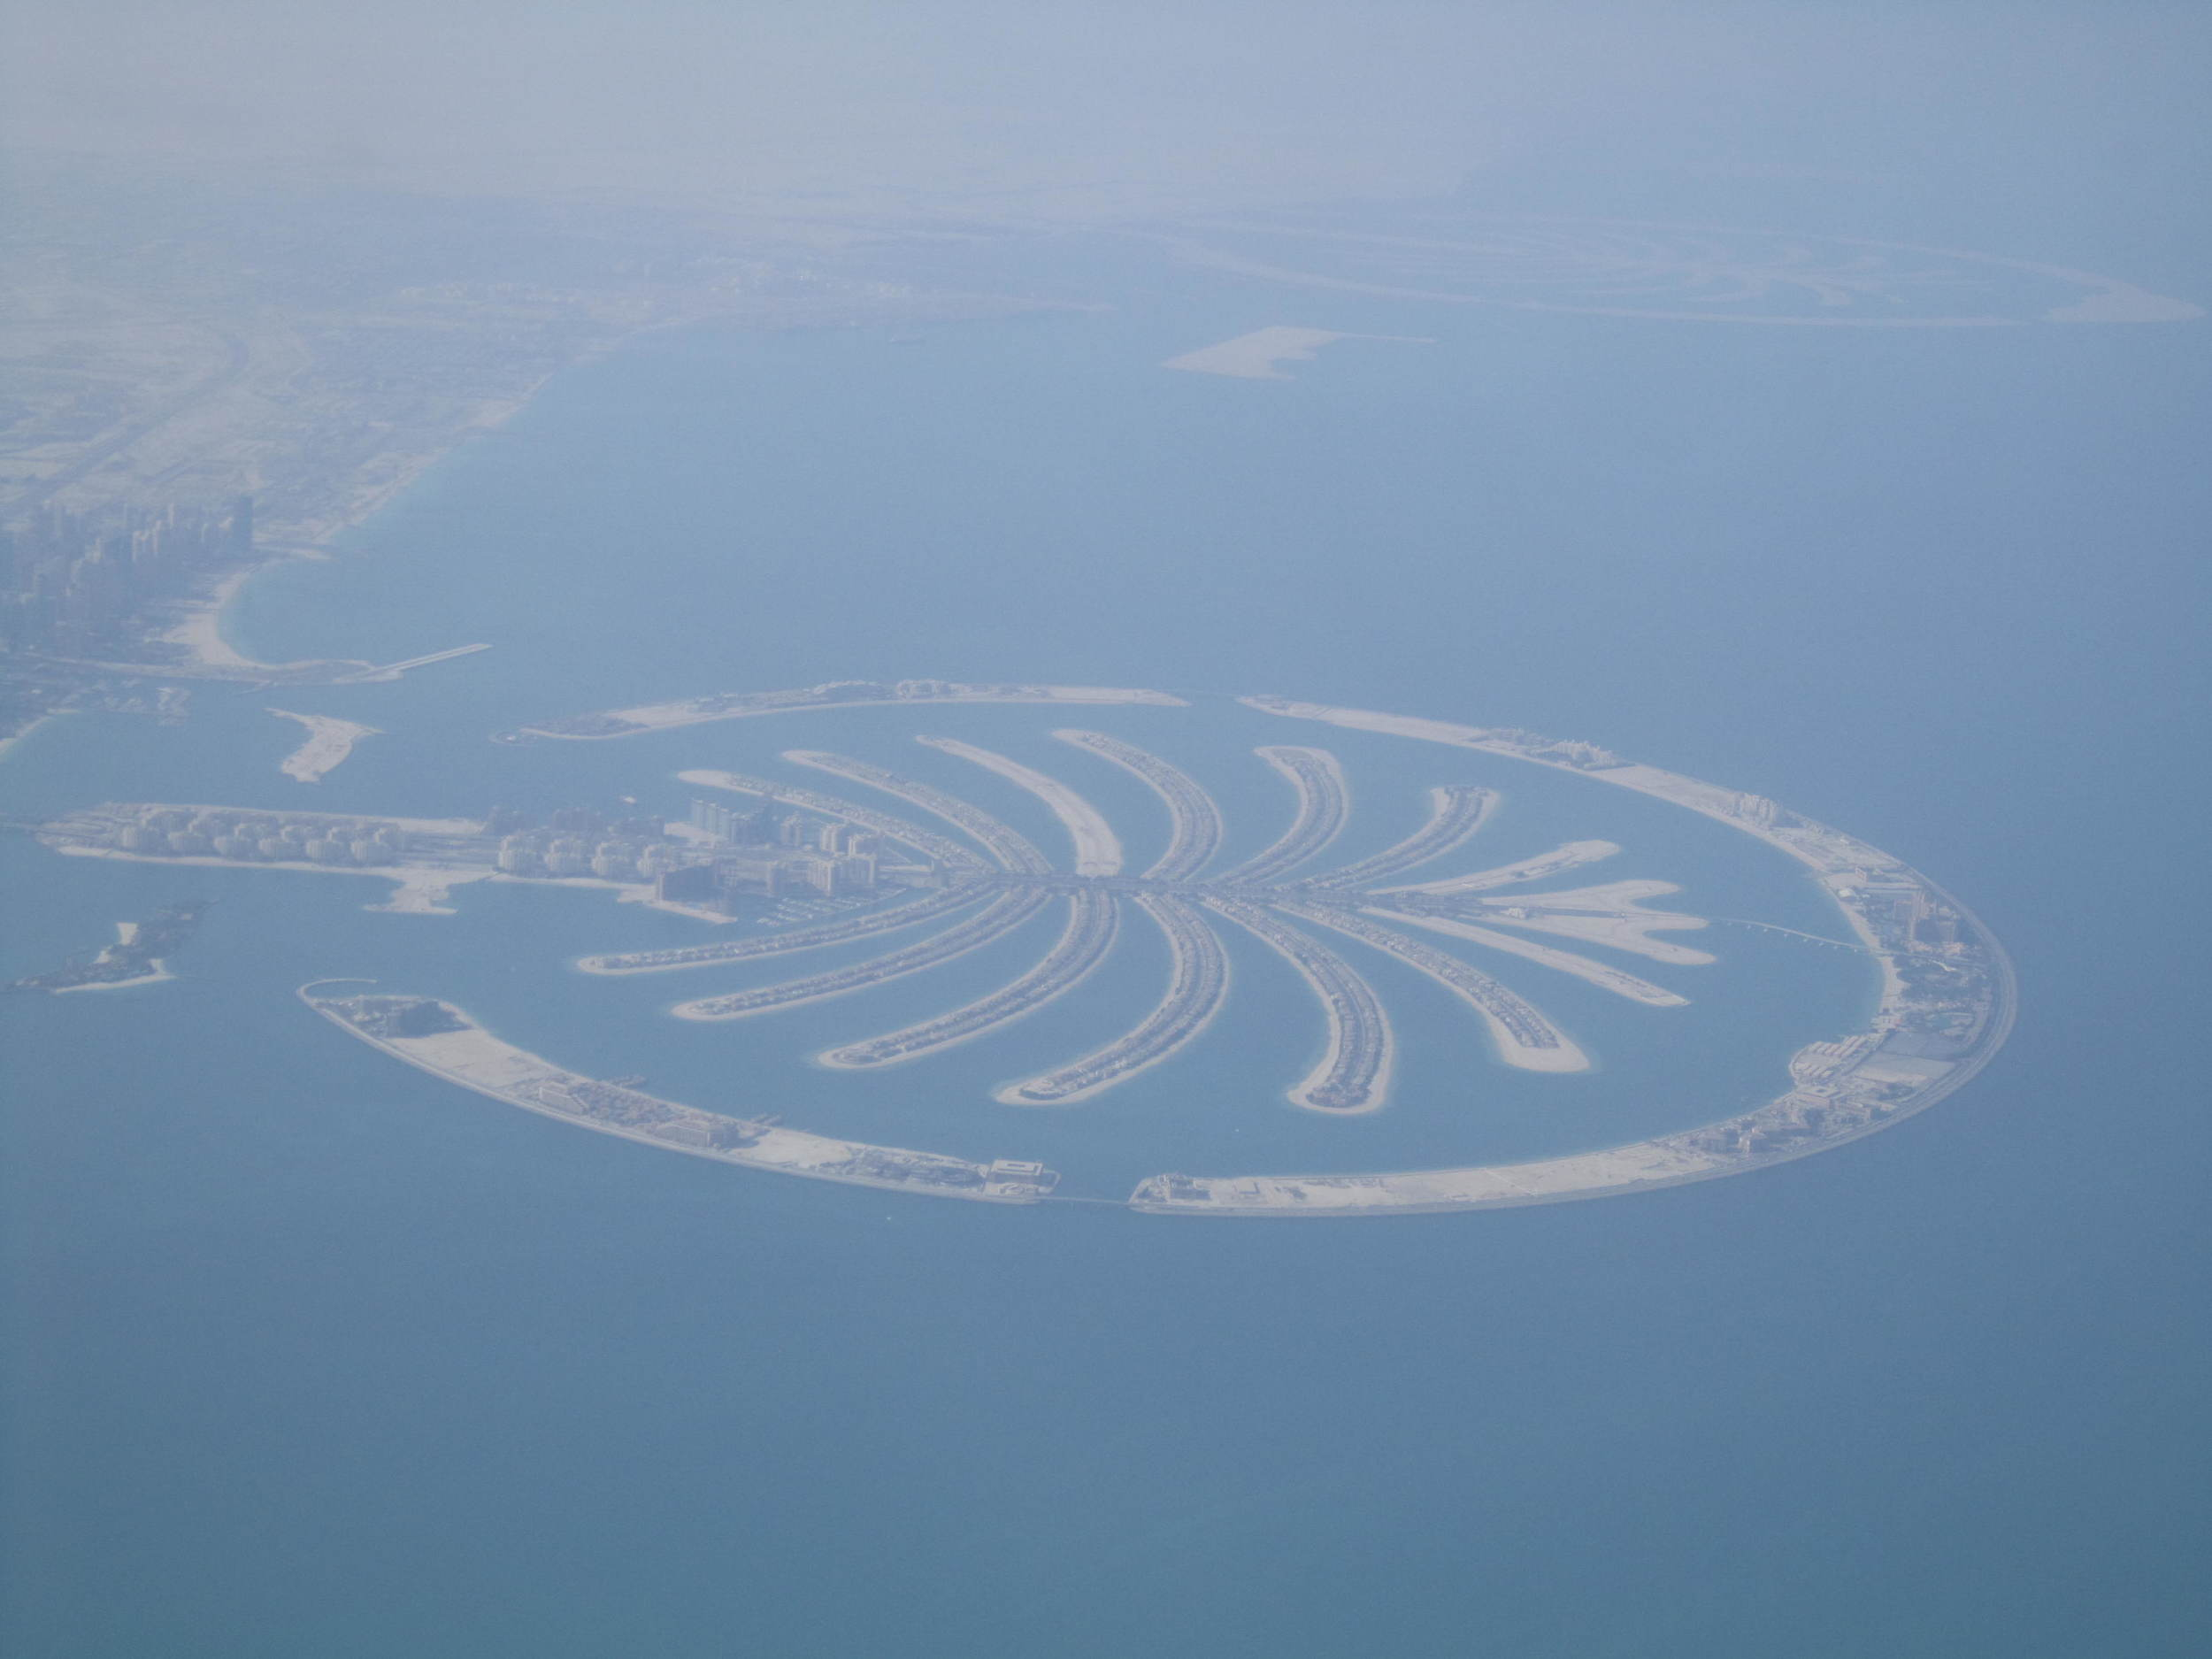 One of the palm islands we went exploring